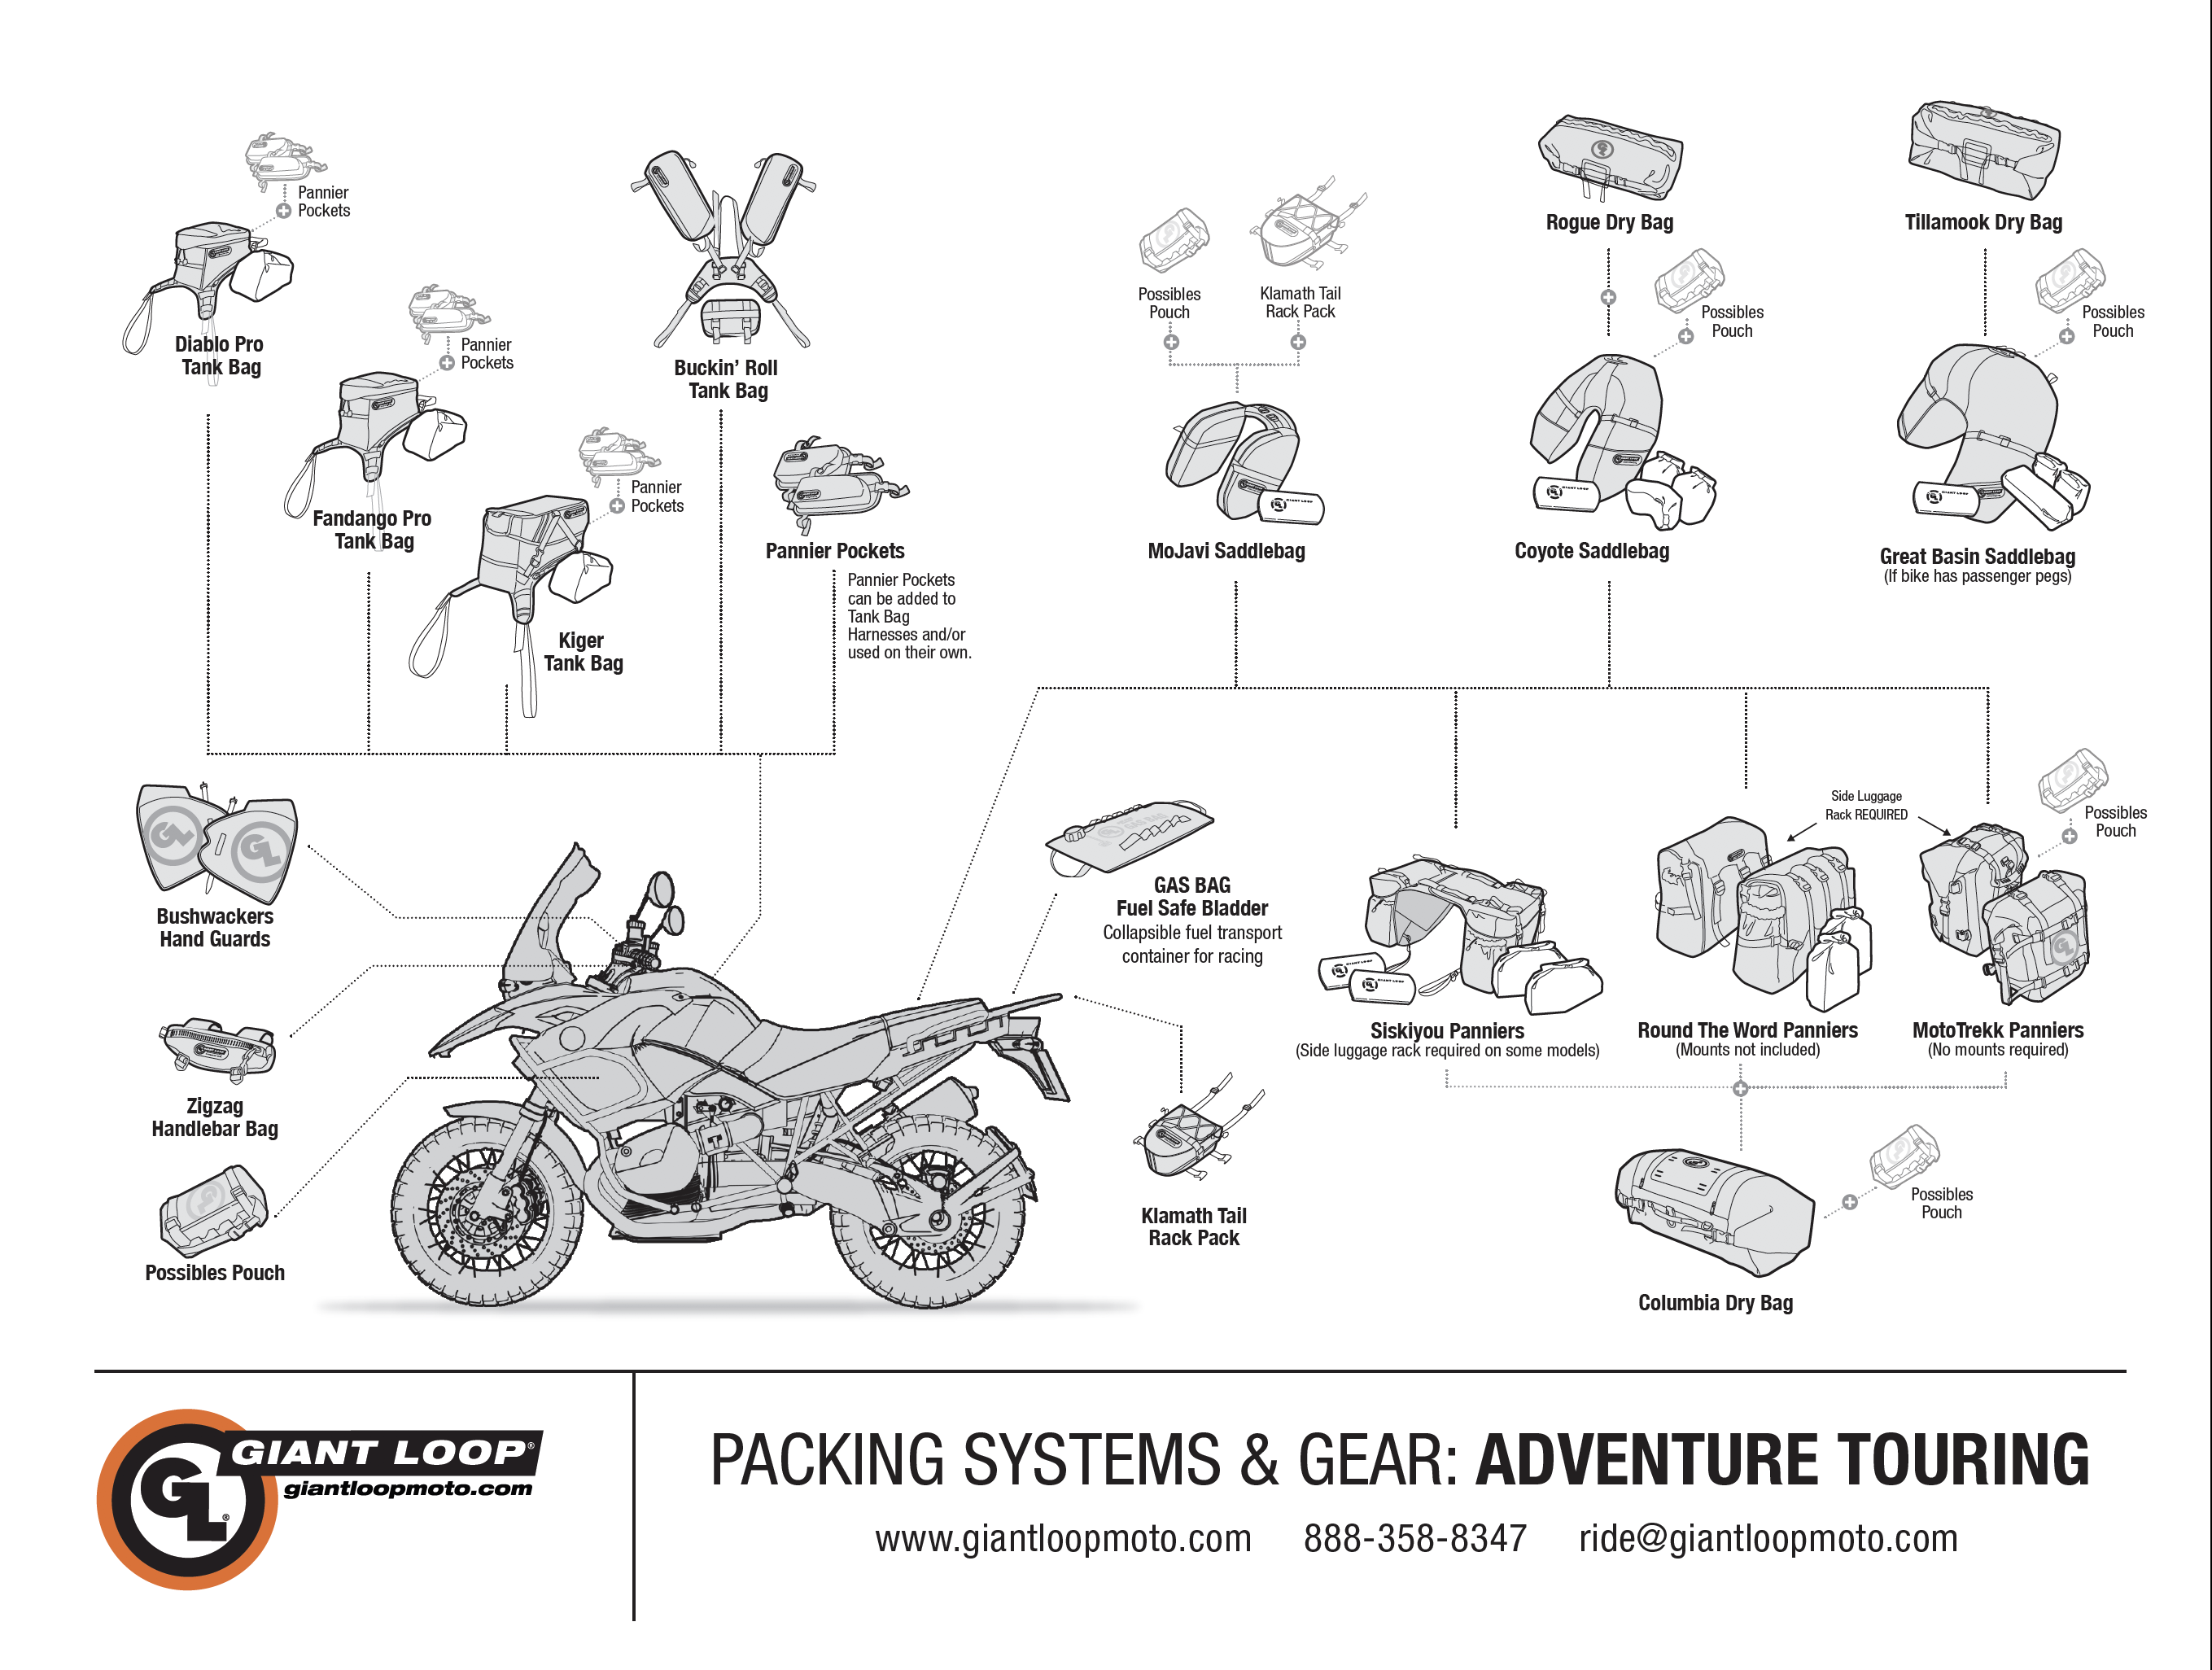 Home Giant Loop Baja Designs Wiring Diagram Ttr 250 View Gls Adventure Touring Packing Systems